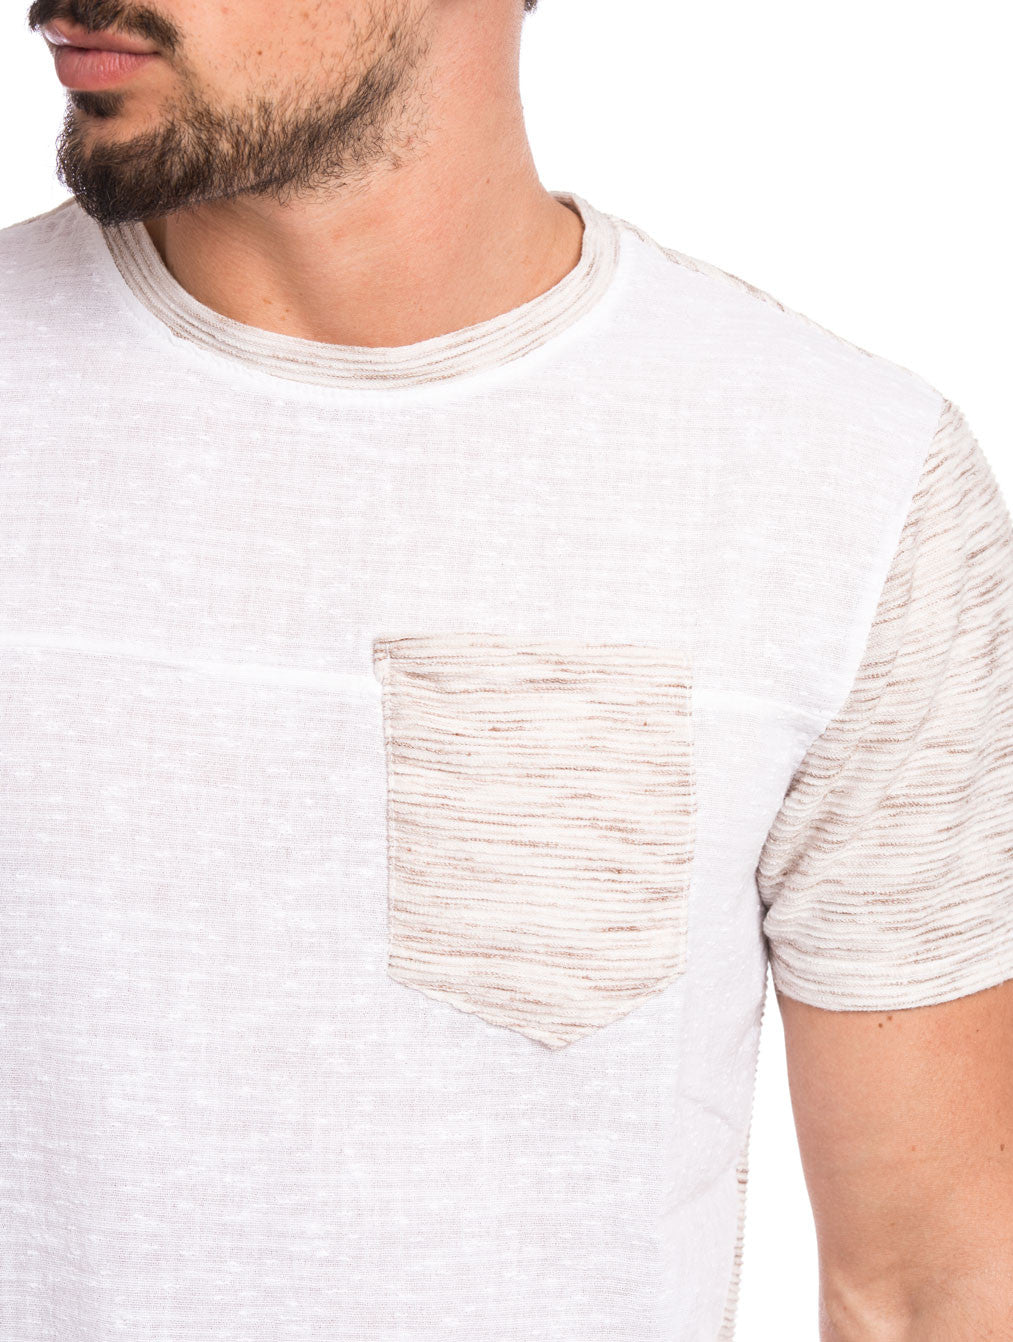 MEN'S CLOTHING | BEIGE AND WHITE POCKET T-SHIRT | LINEN-COTTON | SLIM-FIT | NOHOW